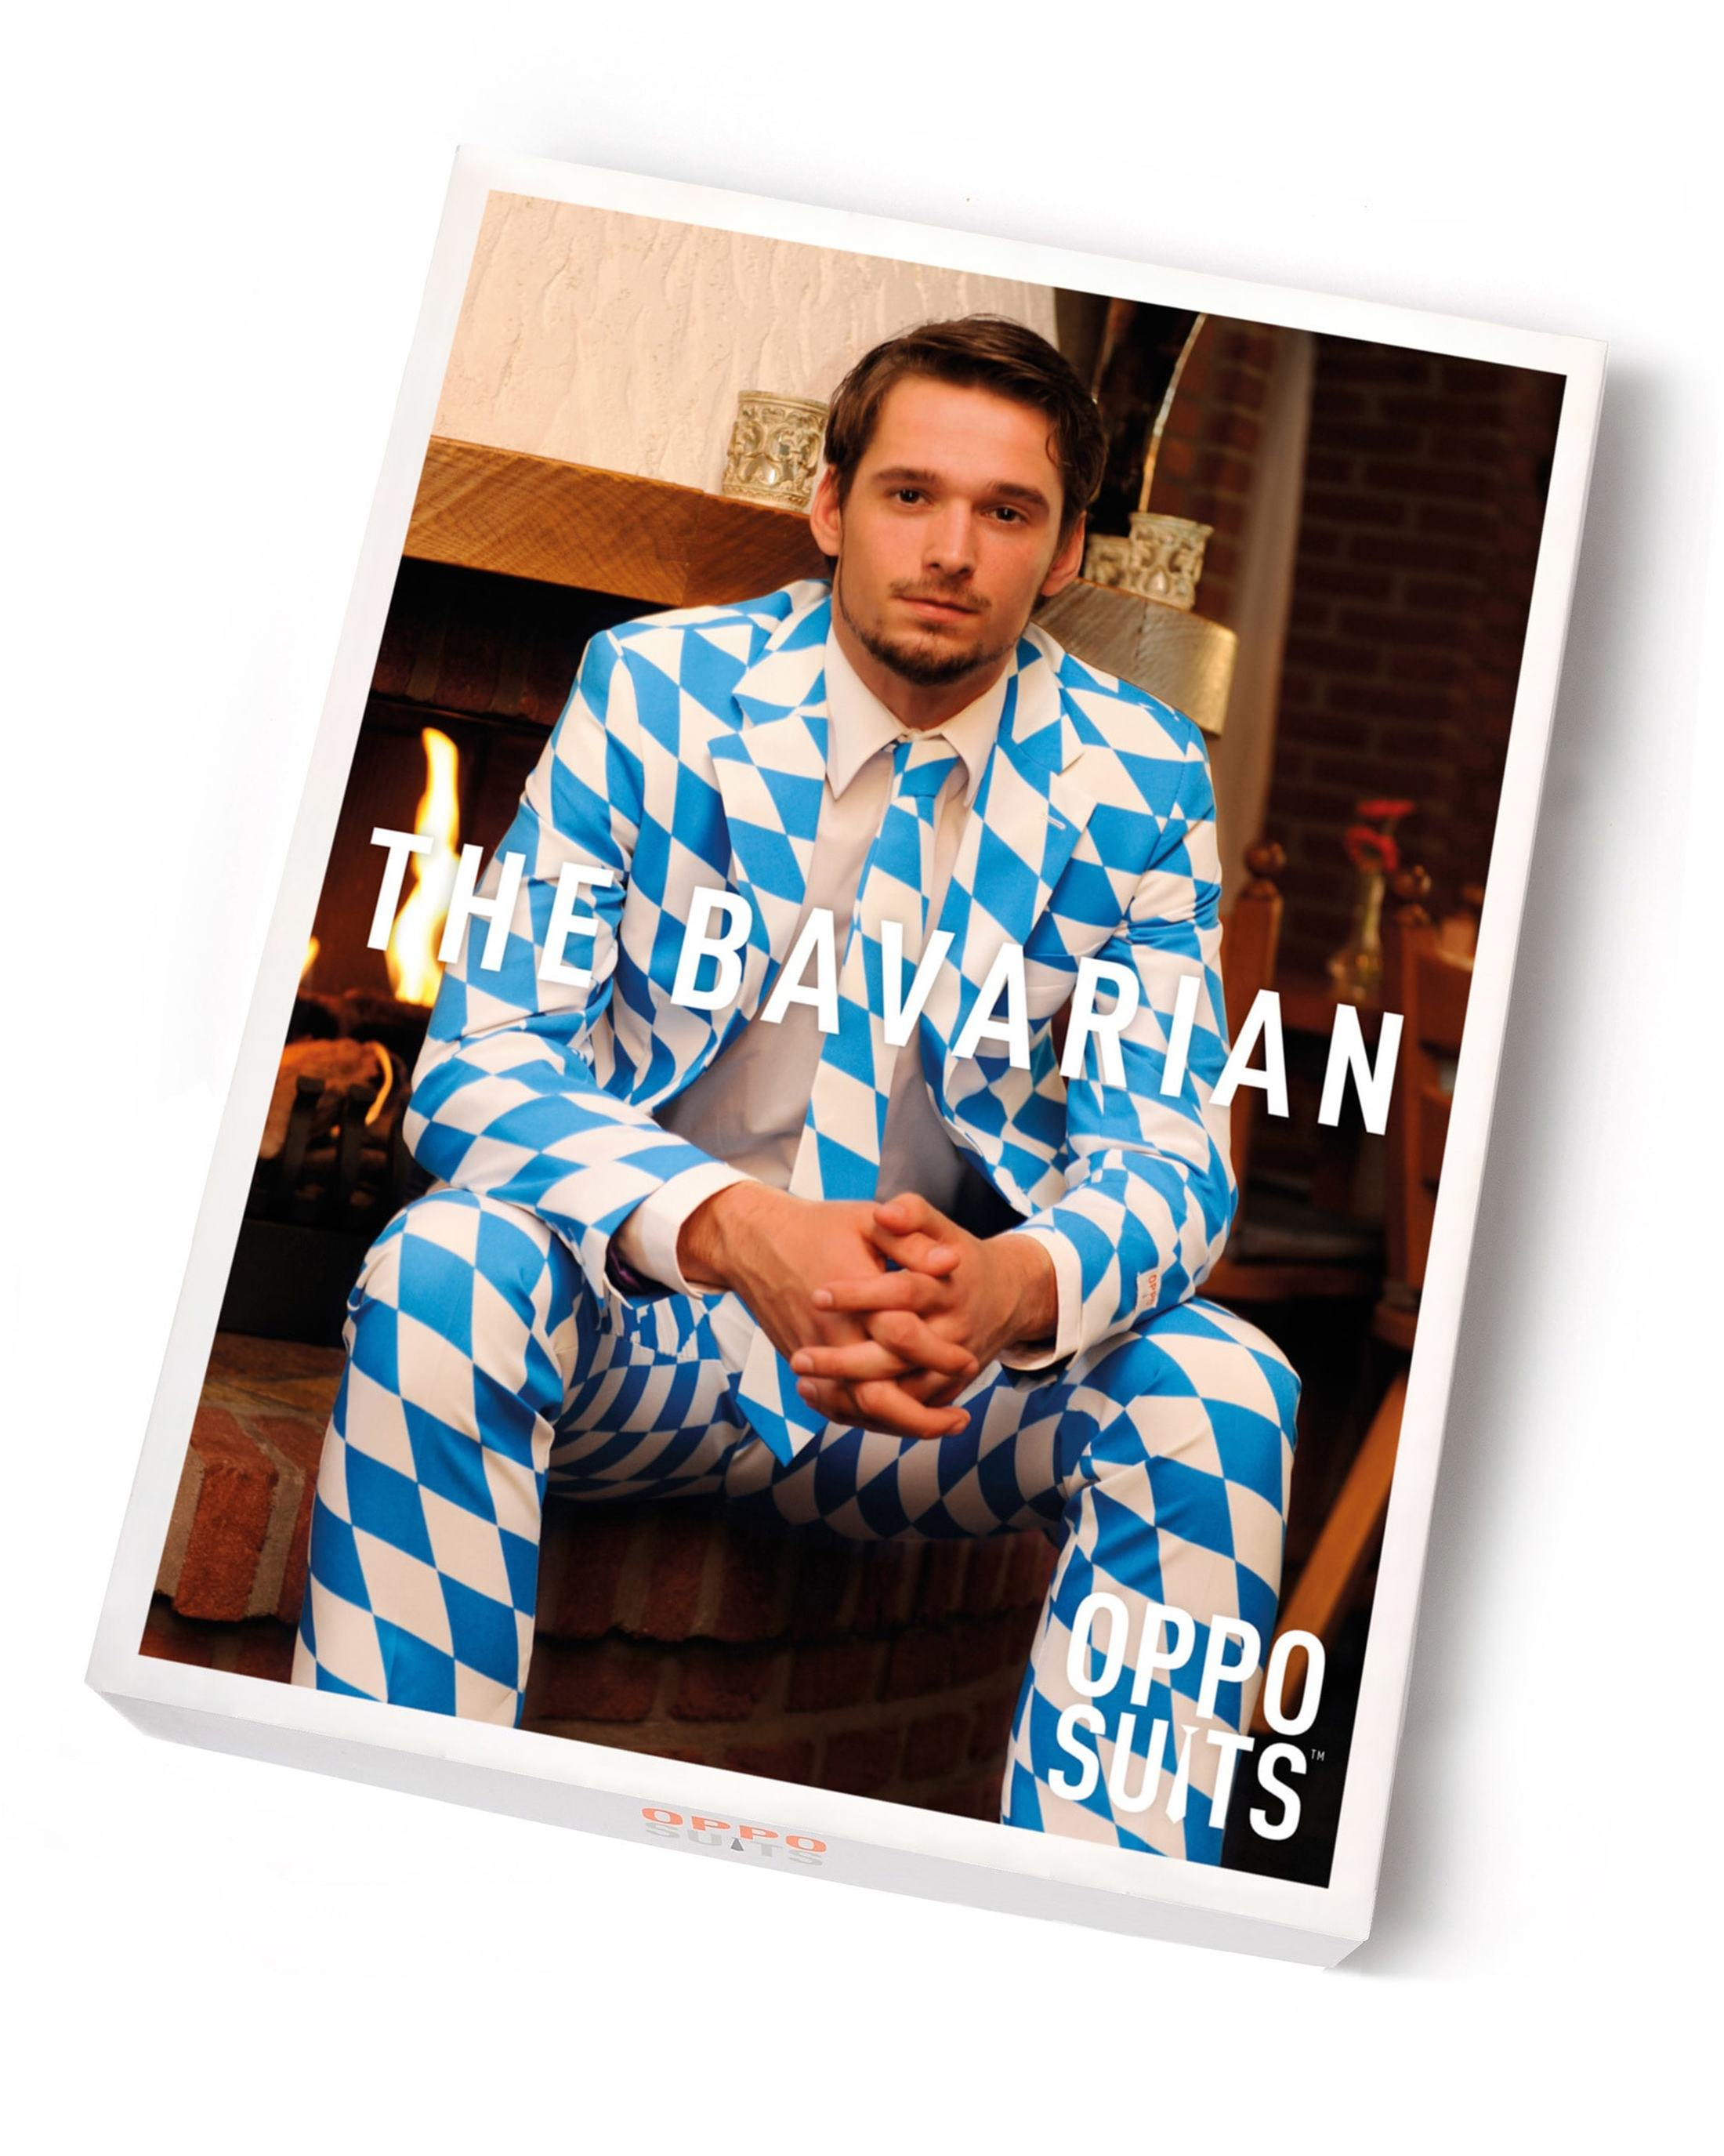 OppoSuits The Bavarian Suit foto 5